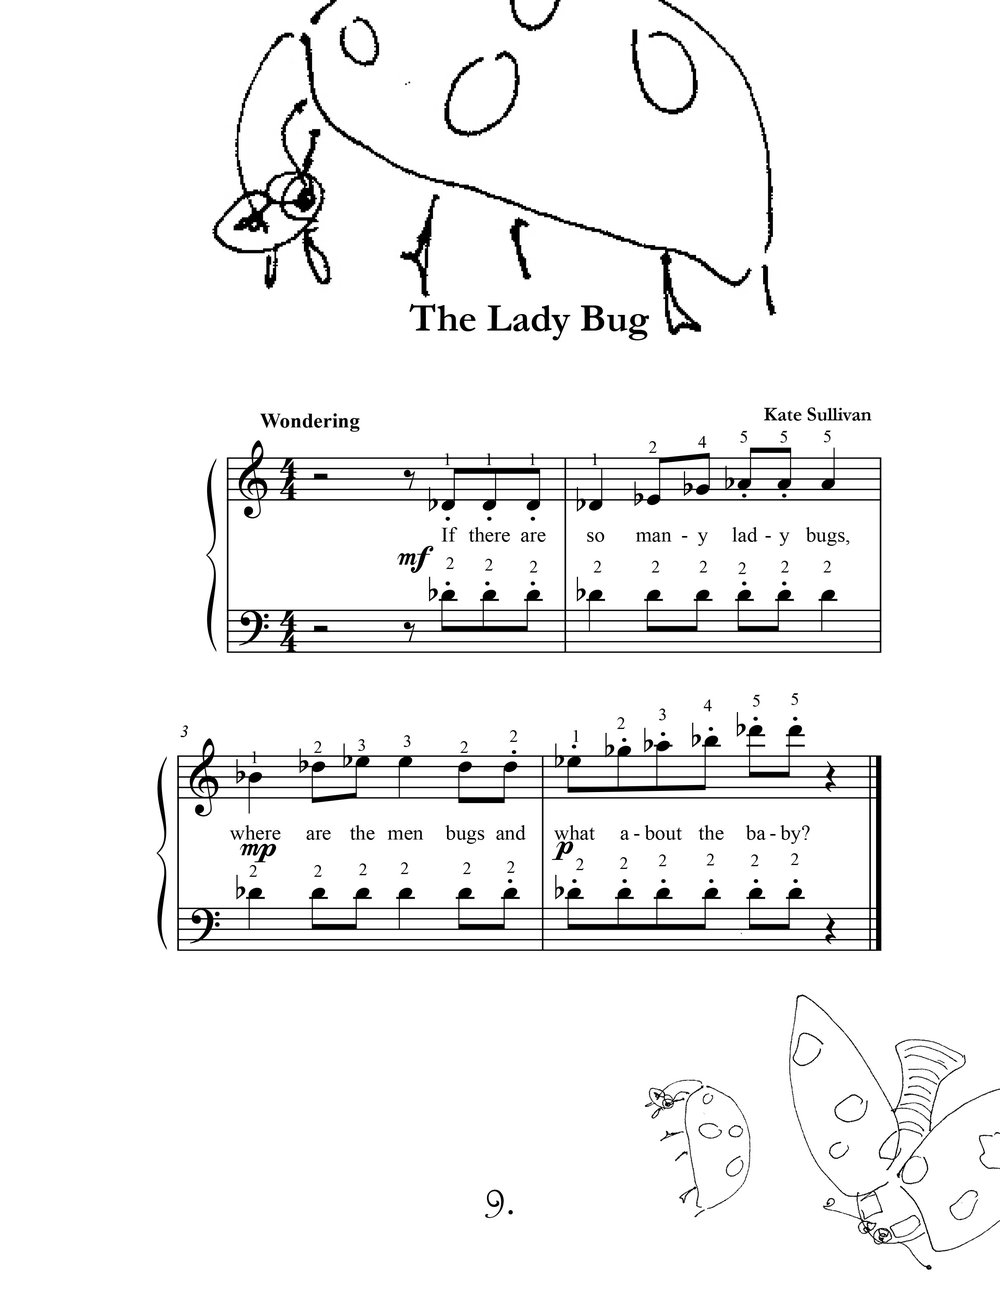 11ladybugmusic8x11.jpg